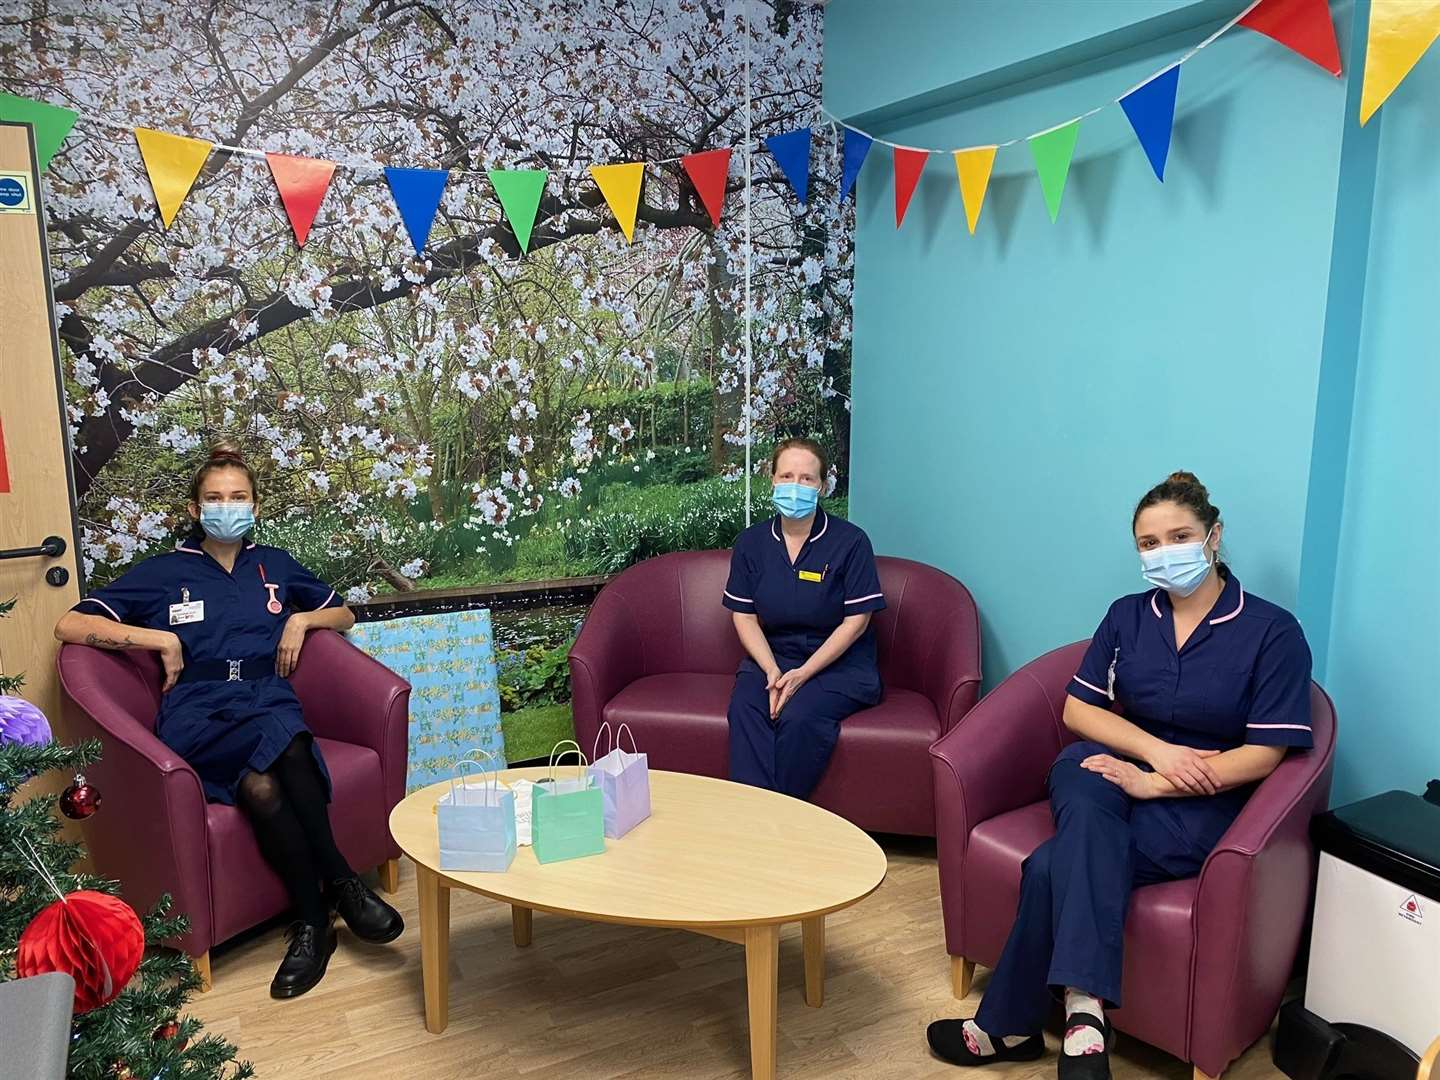 The fifth birthday of the Waterlily Unit was celebrated this week. Picture: QEH